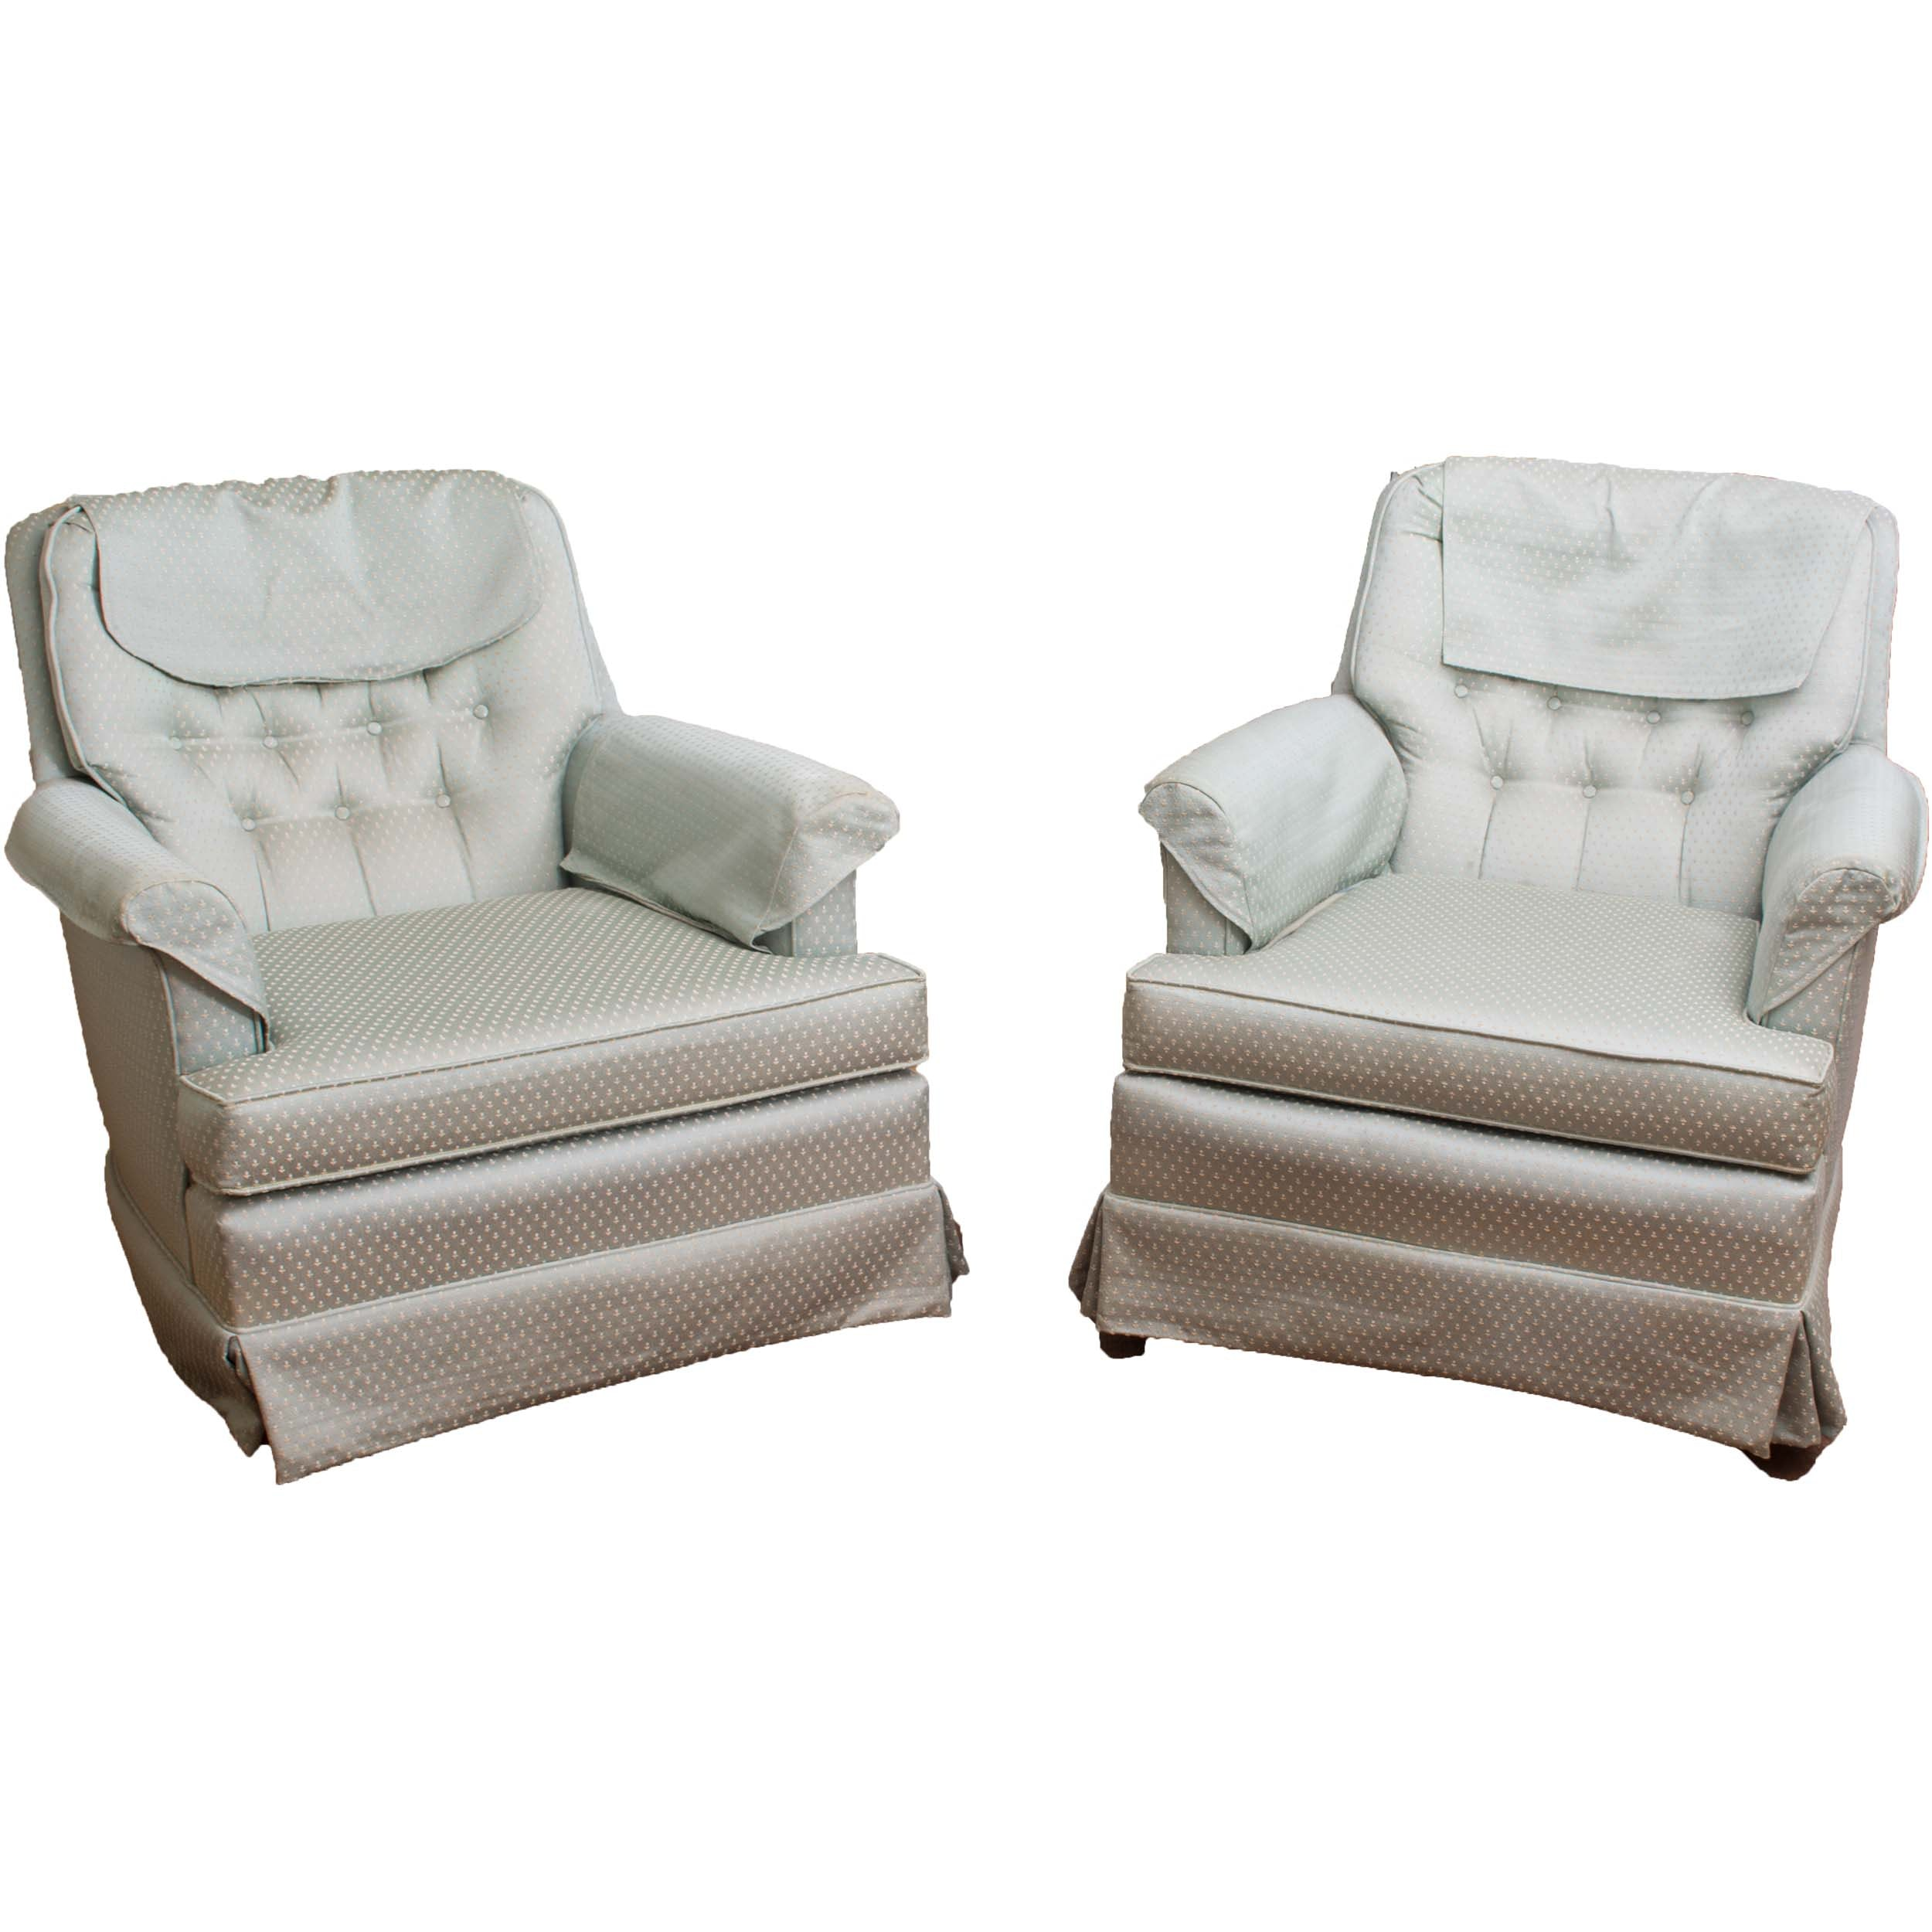 Tufted Upholstered Armchairs